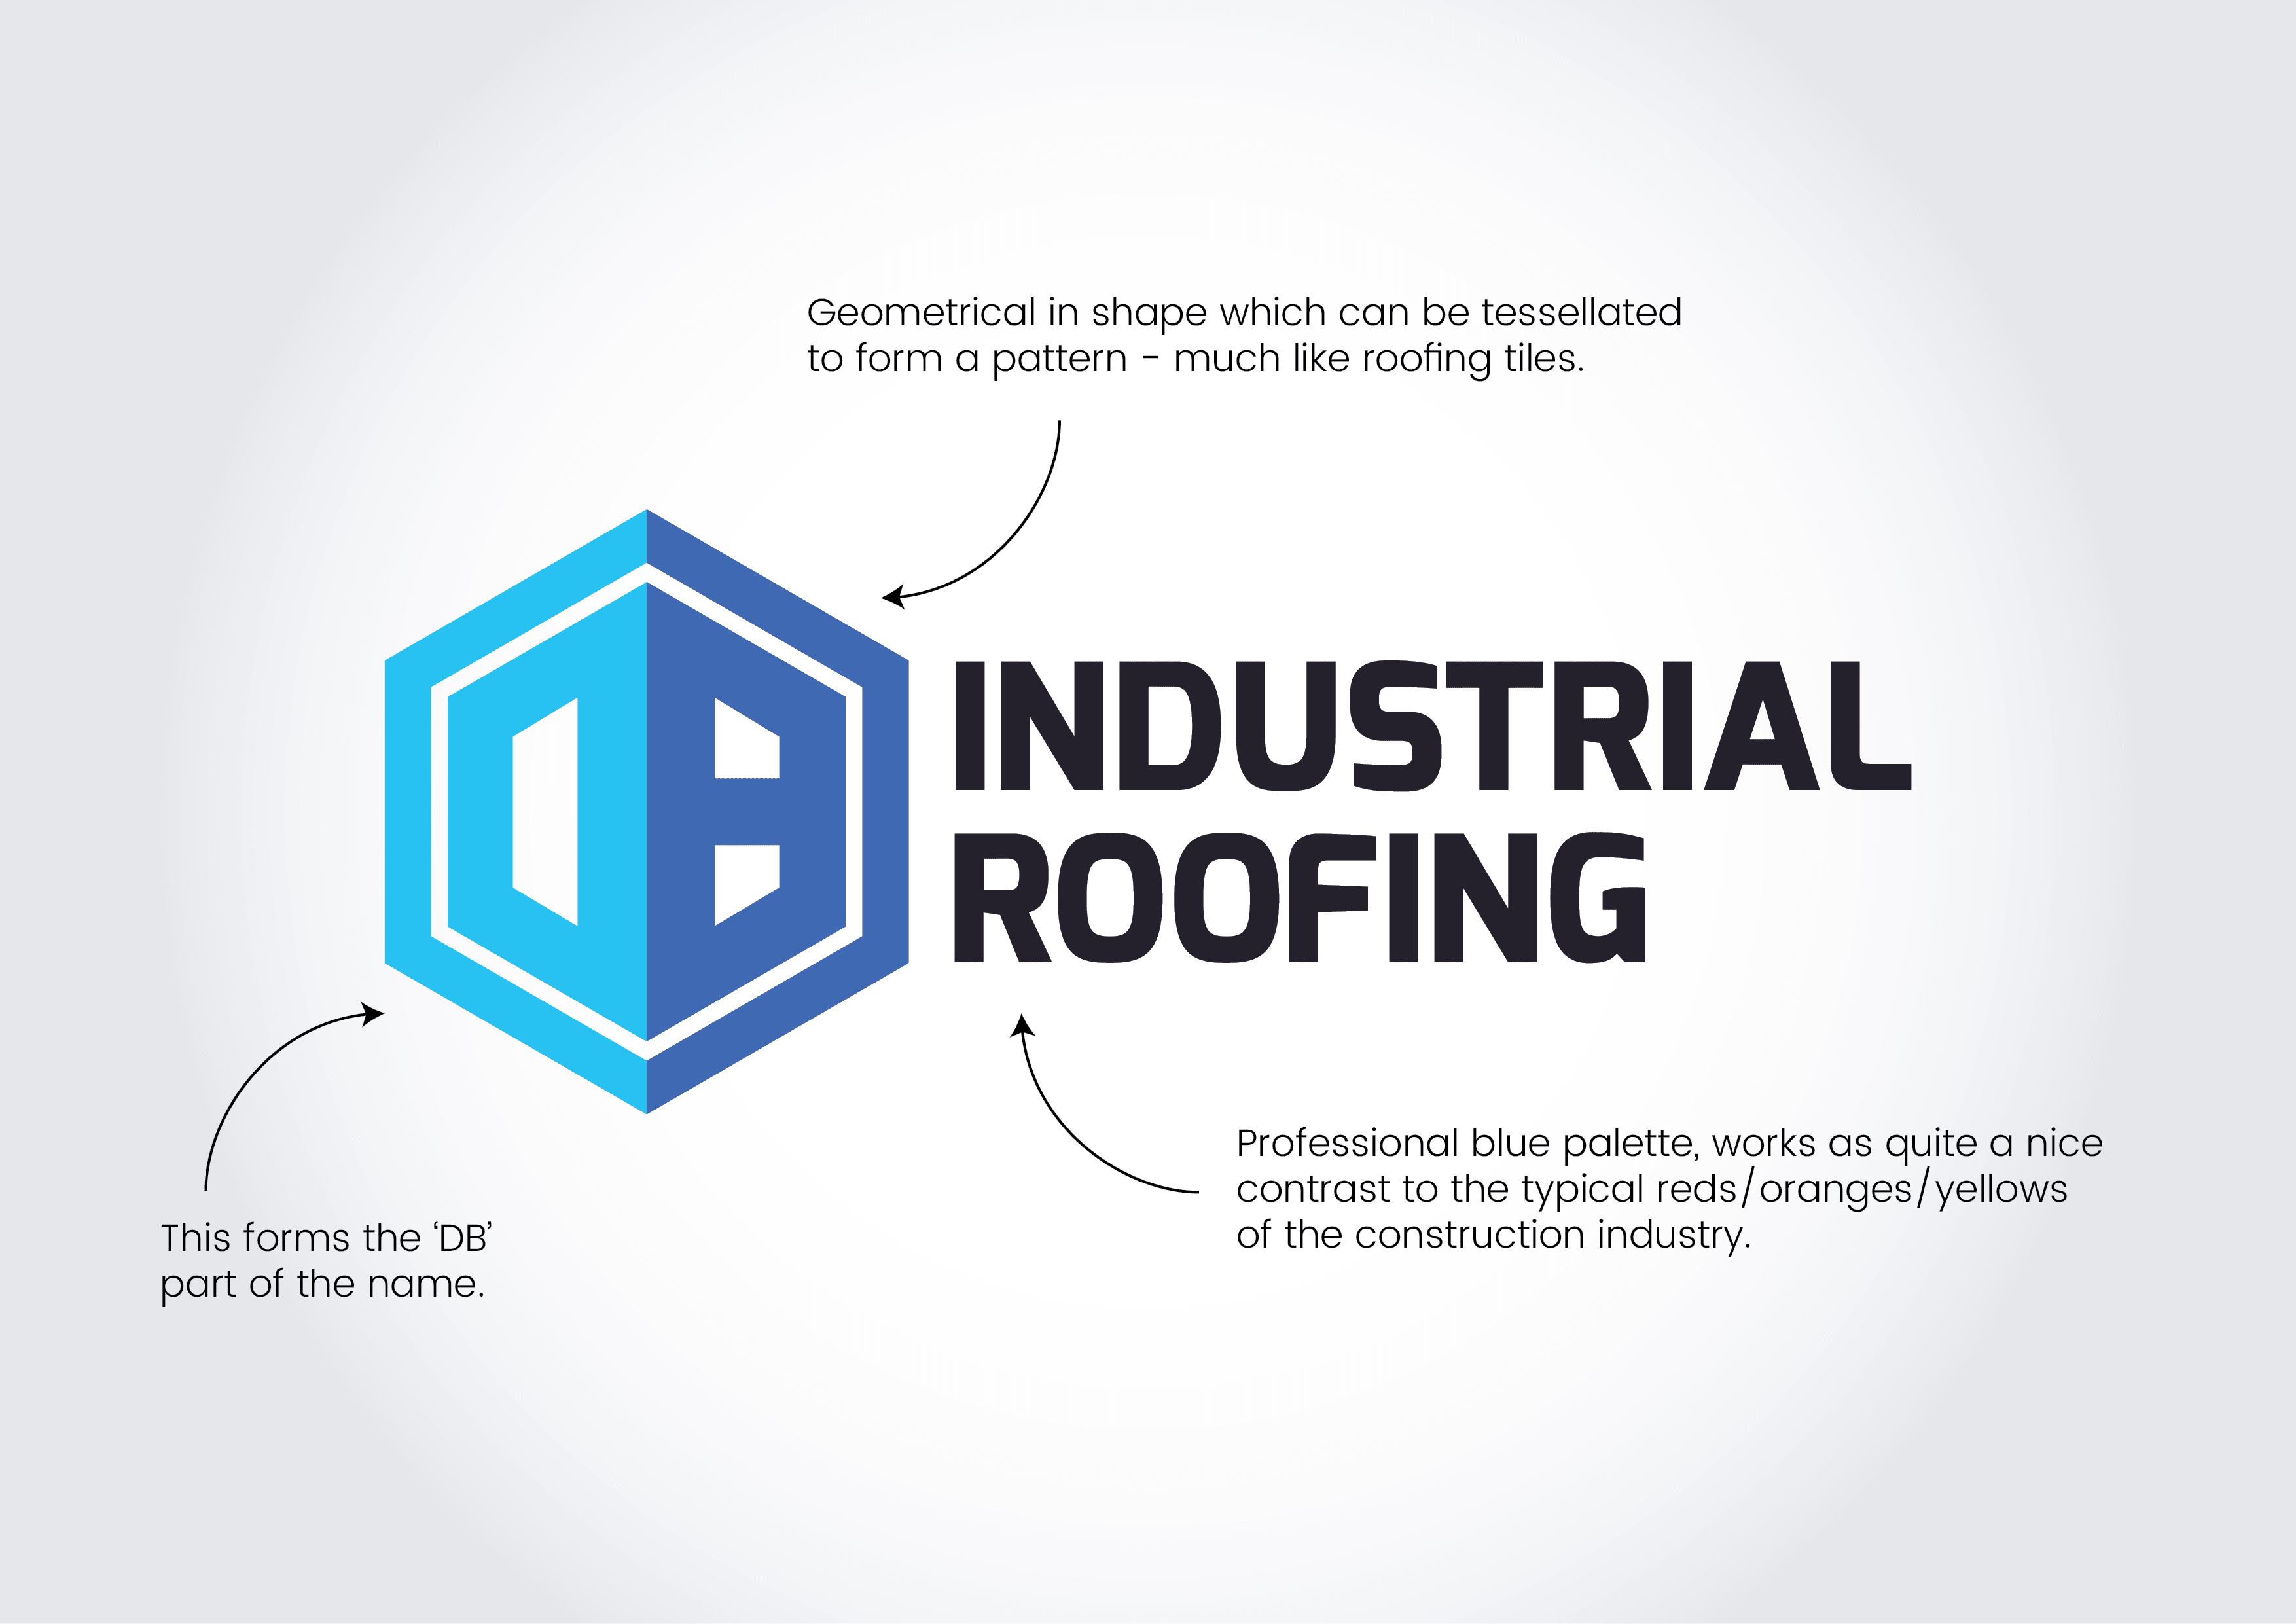 DB industrial roofing logo explanation